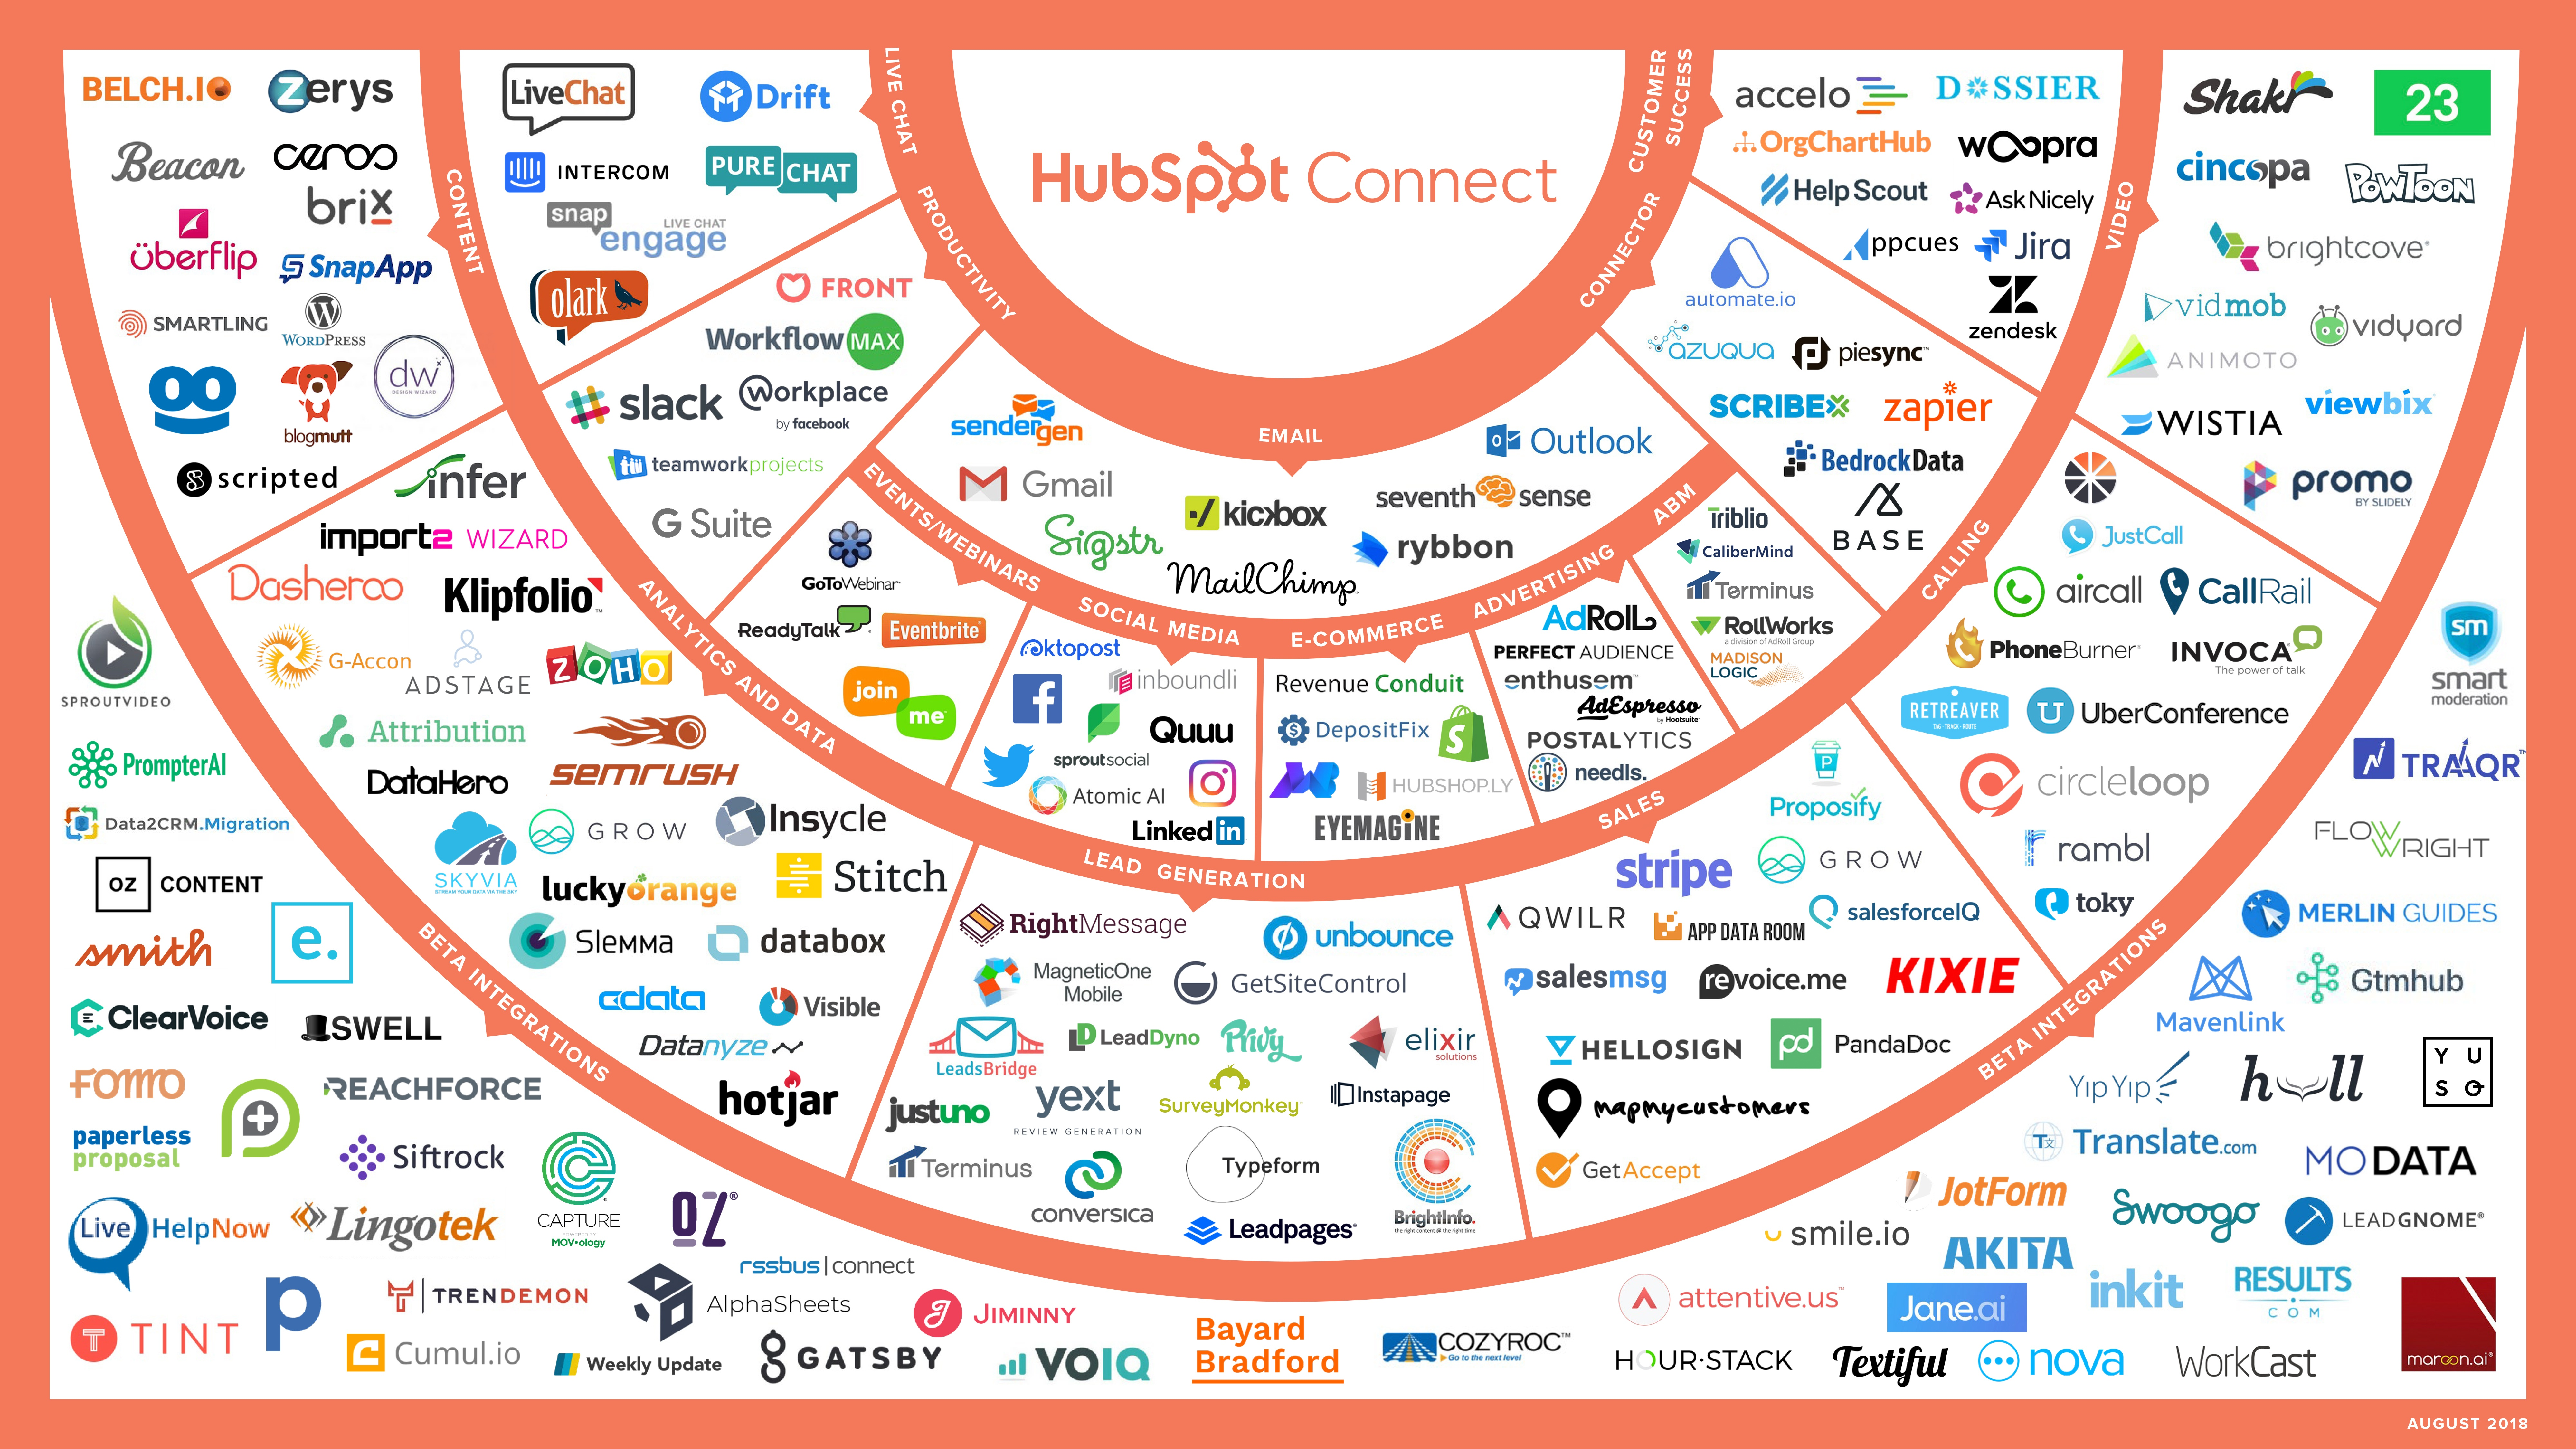 October 2018: New HubSpot Product Integrations This Month